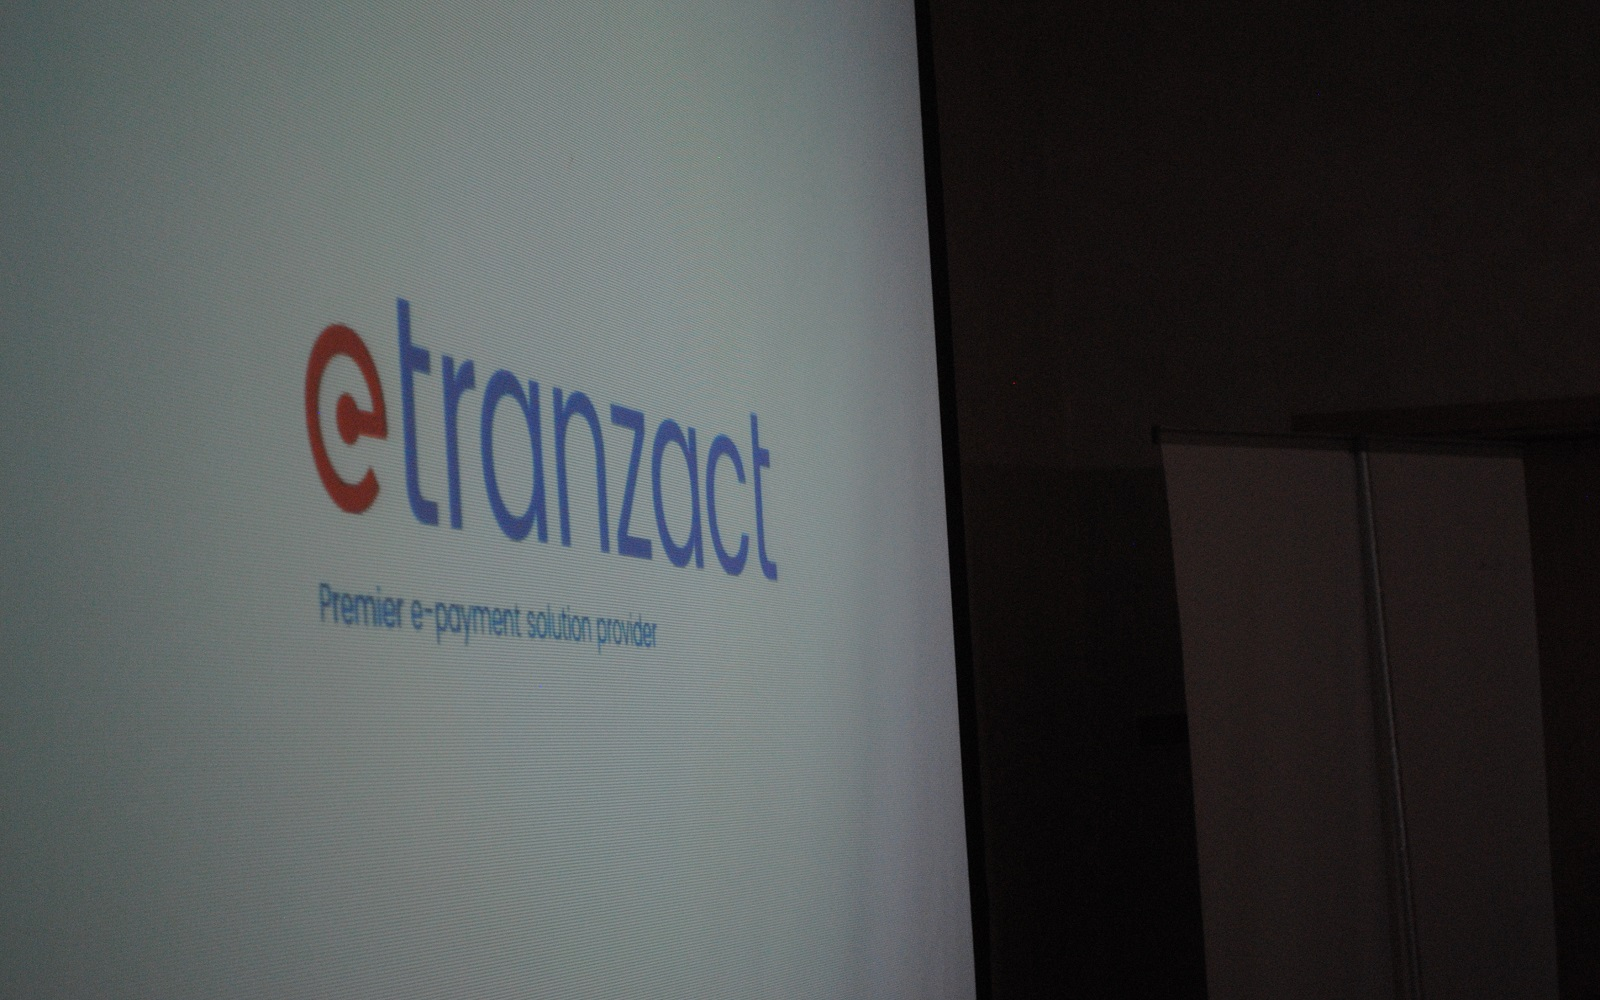 E Tranzact Appoints New Directors To Its Board